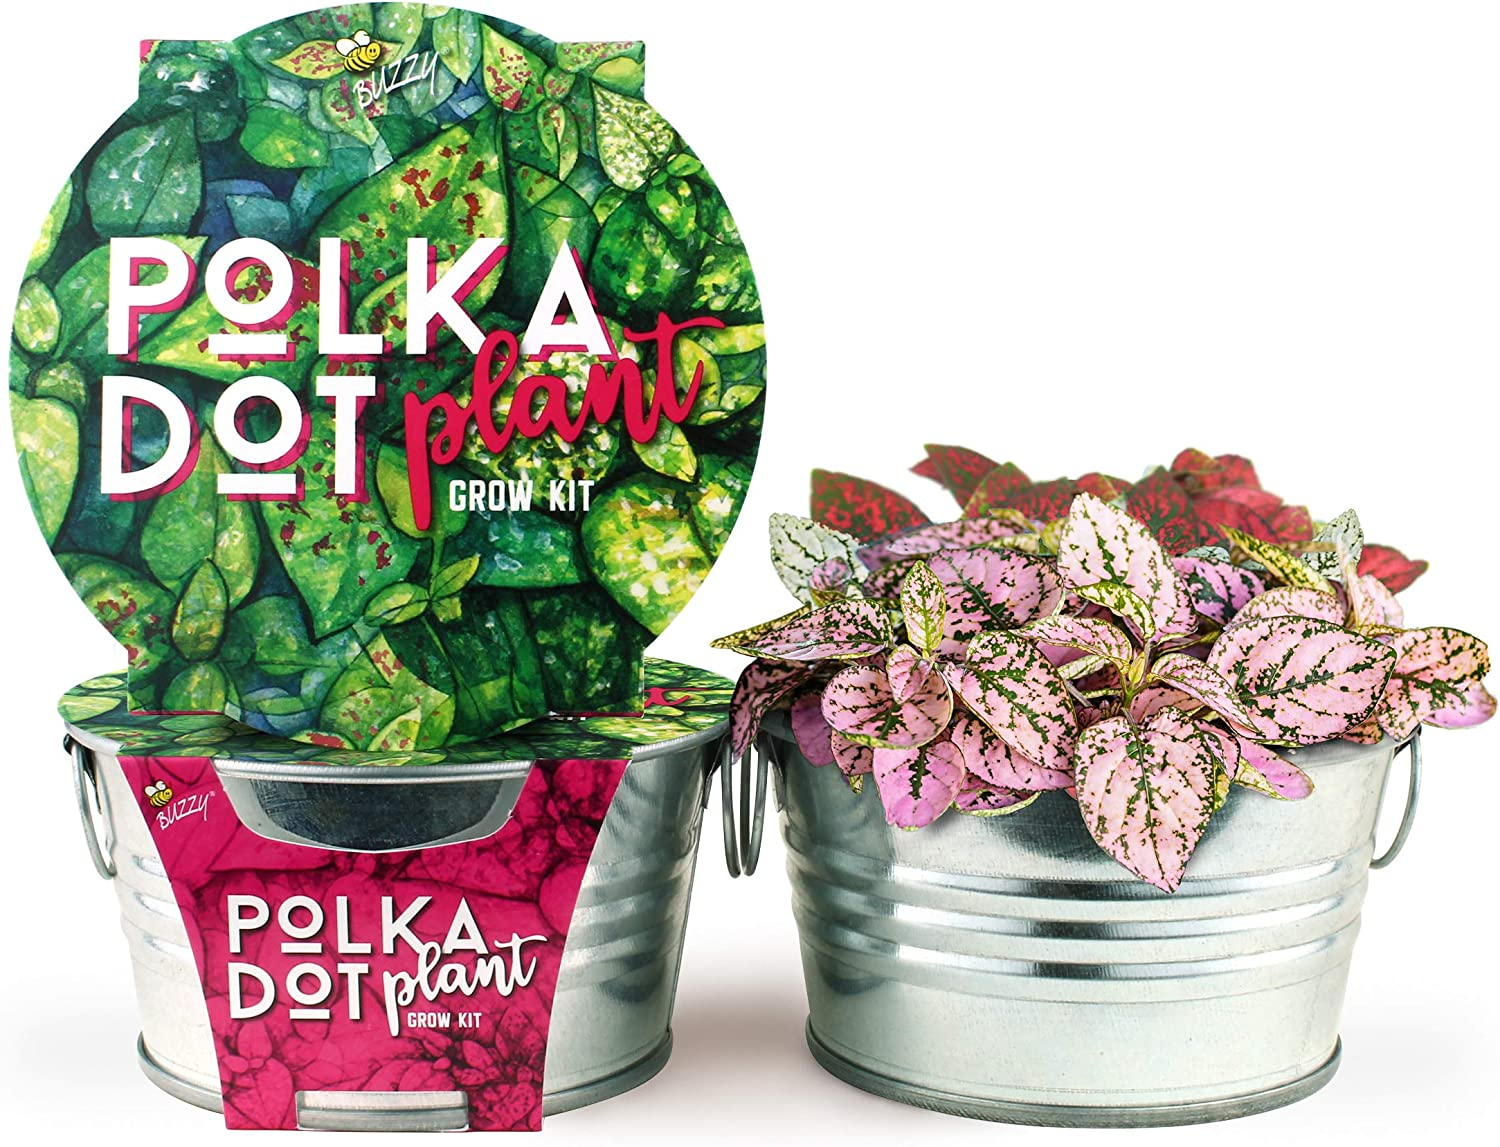 BUZZY Mini Basin Seed Grow Kit | Polka Dot Plant | Painted Garden Collection | Best Gardening Gifts, Favors, Weddings, Parties, Events, Modern, Trendy, Unique, and Fun | Growth Guaranteed